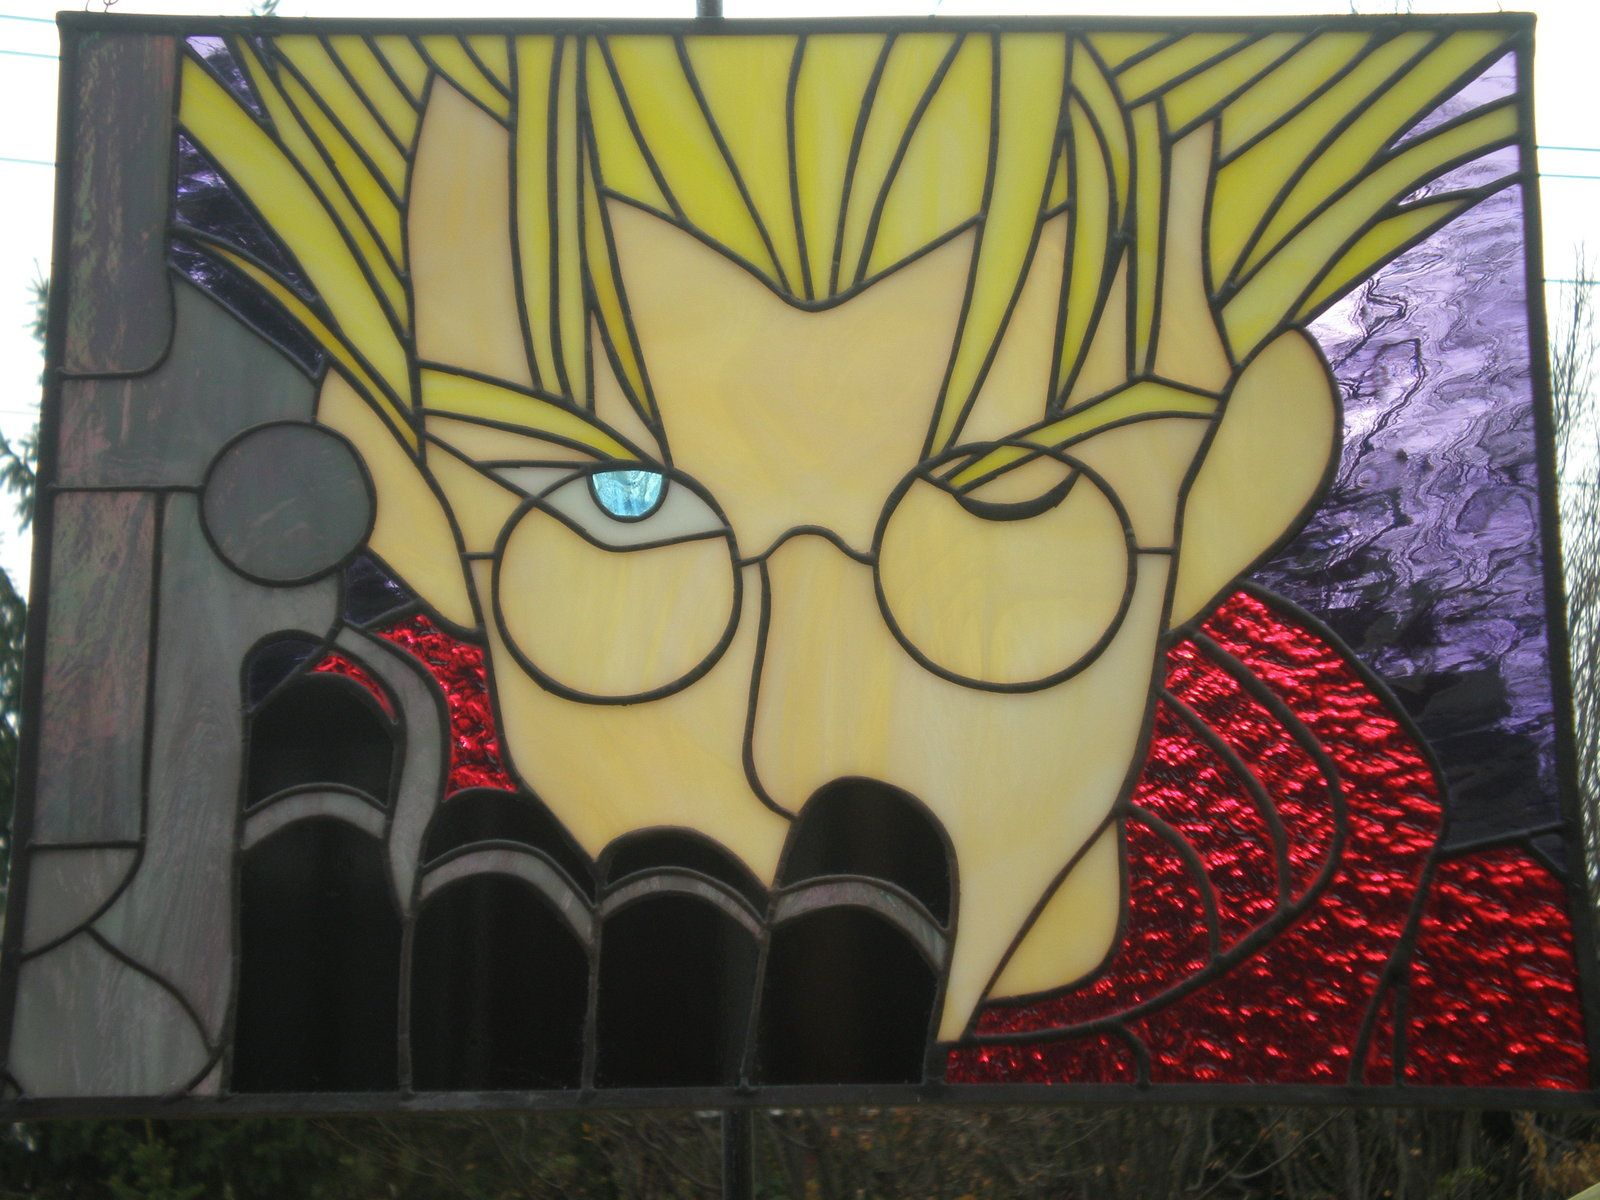 Vash the stampede in stained glass by ZeroWingLabs